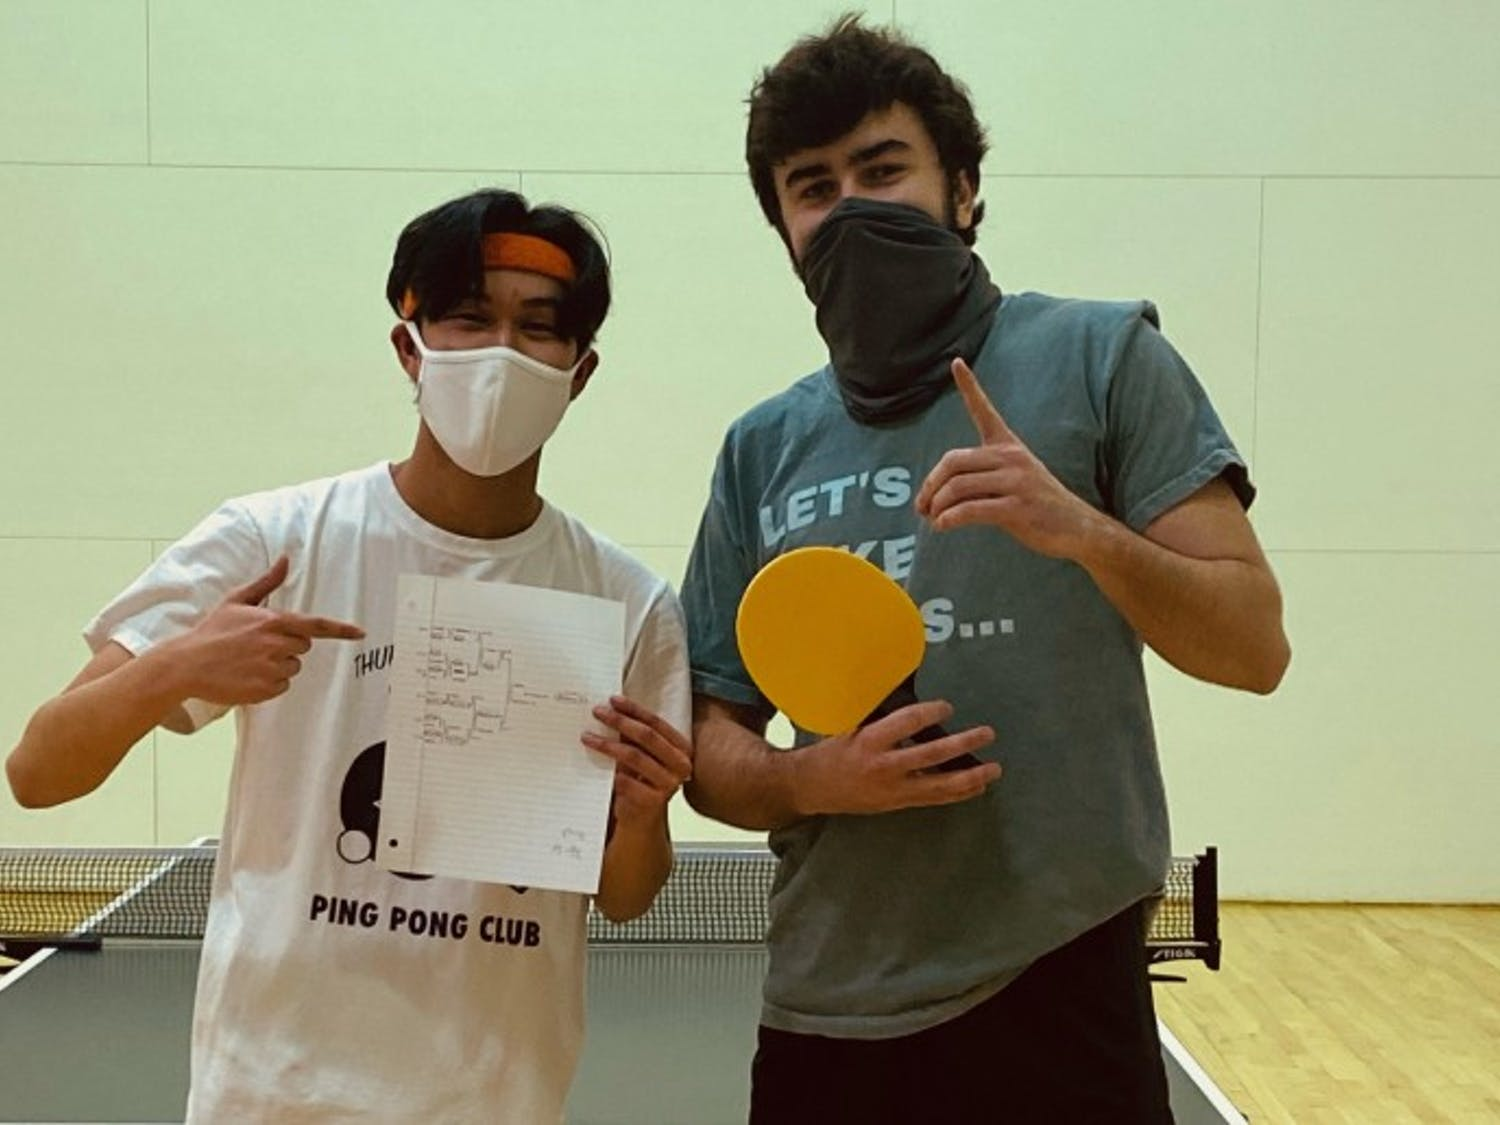 Andrew Nguyen (left) and Jack Brantley (right) pose after a club table tennis tournament. The club has about 40 members who practice every Monday.